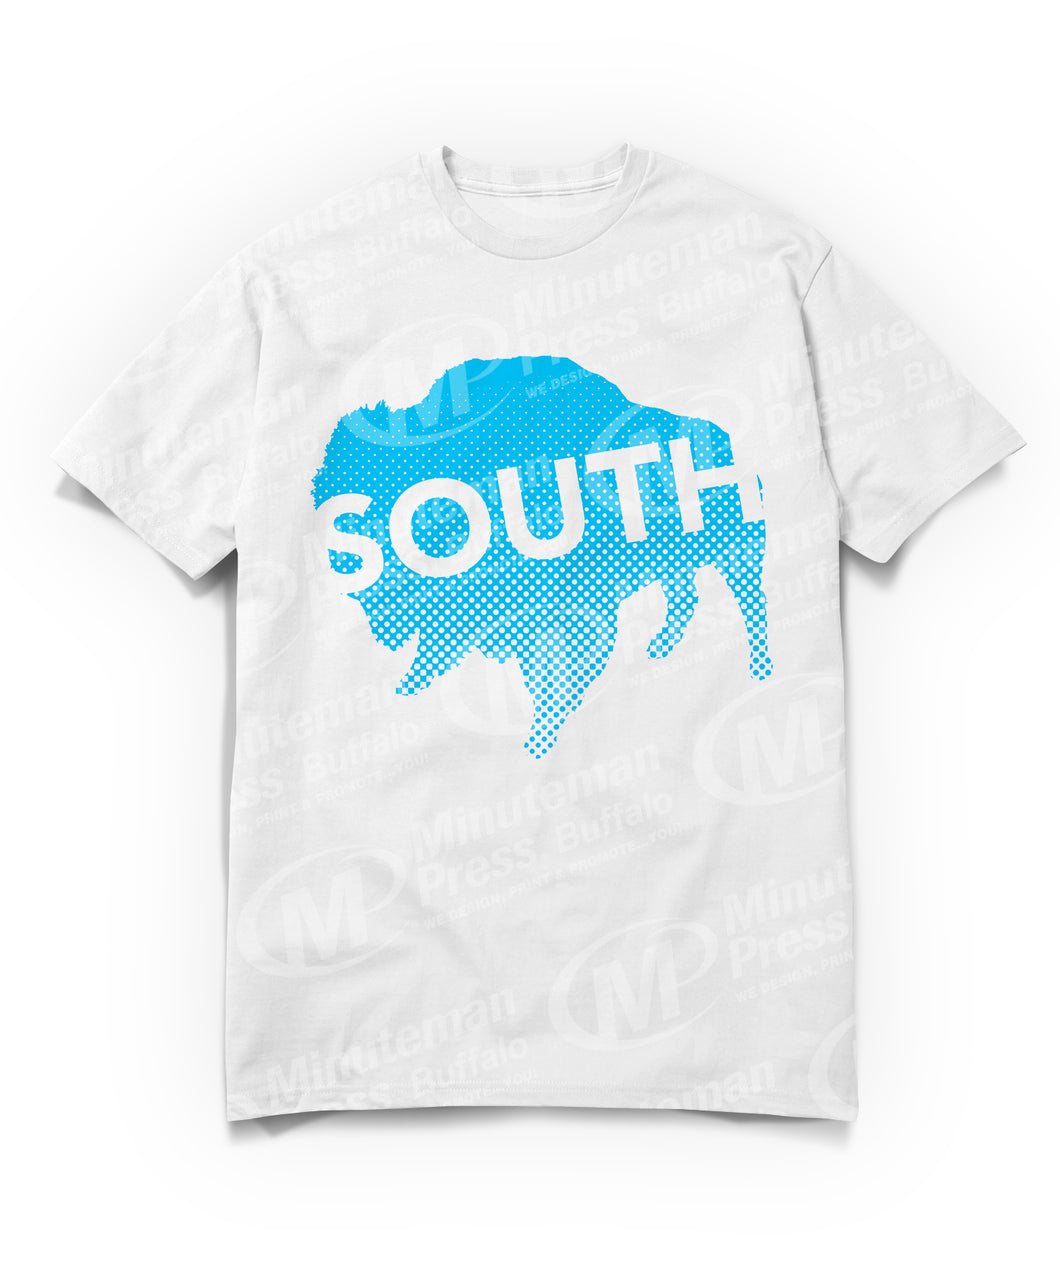 south text on blue buffalo on white t-shirt